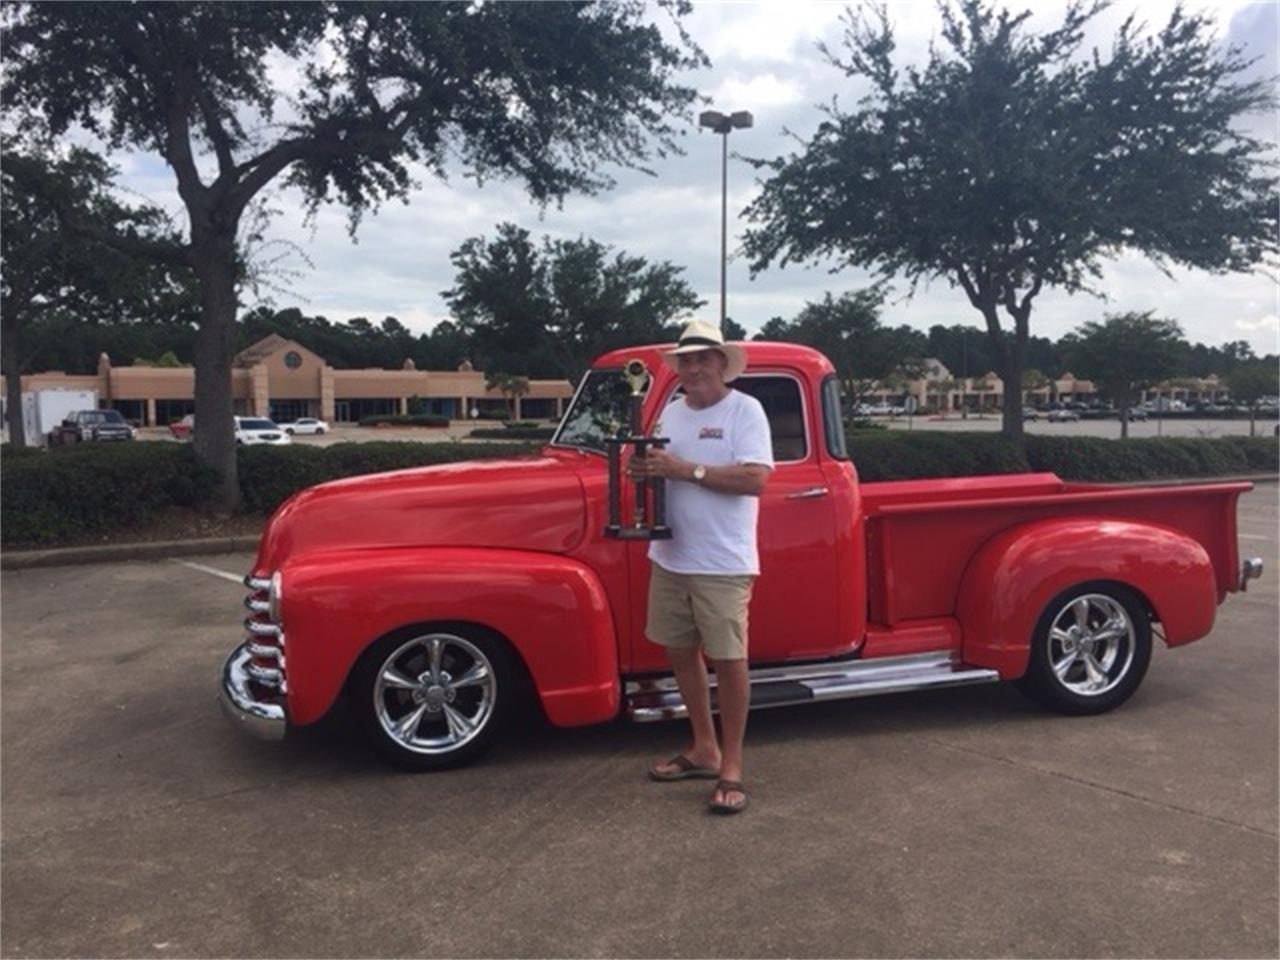 1950 Chevrolet Pickup for Sale | ClassicCars.com | CC-11506561950s Cars For Sale Texas